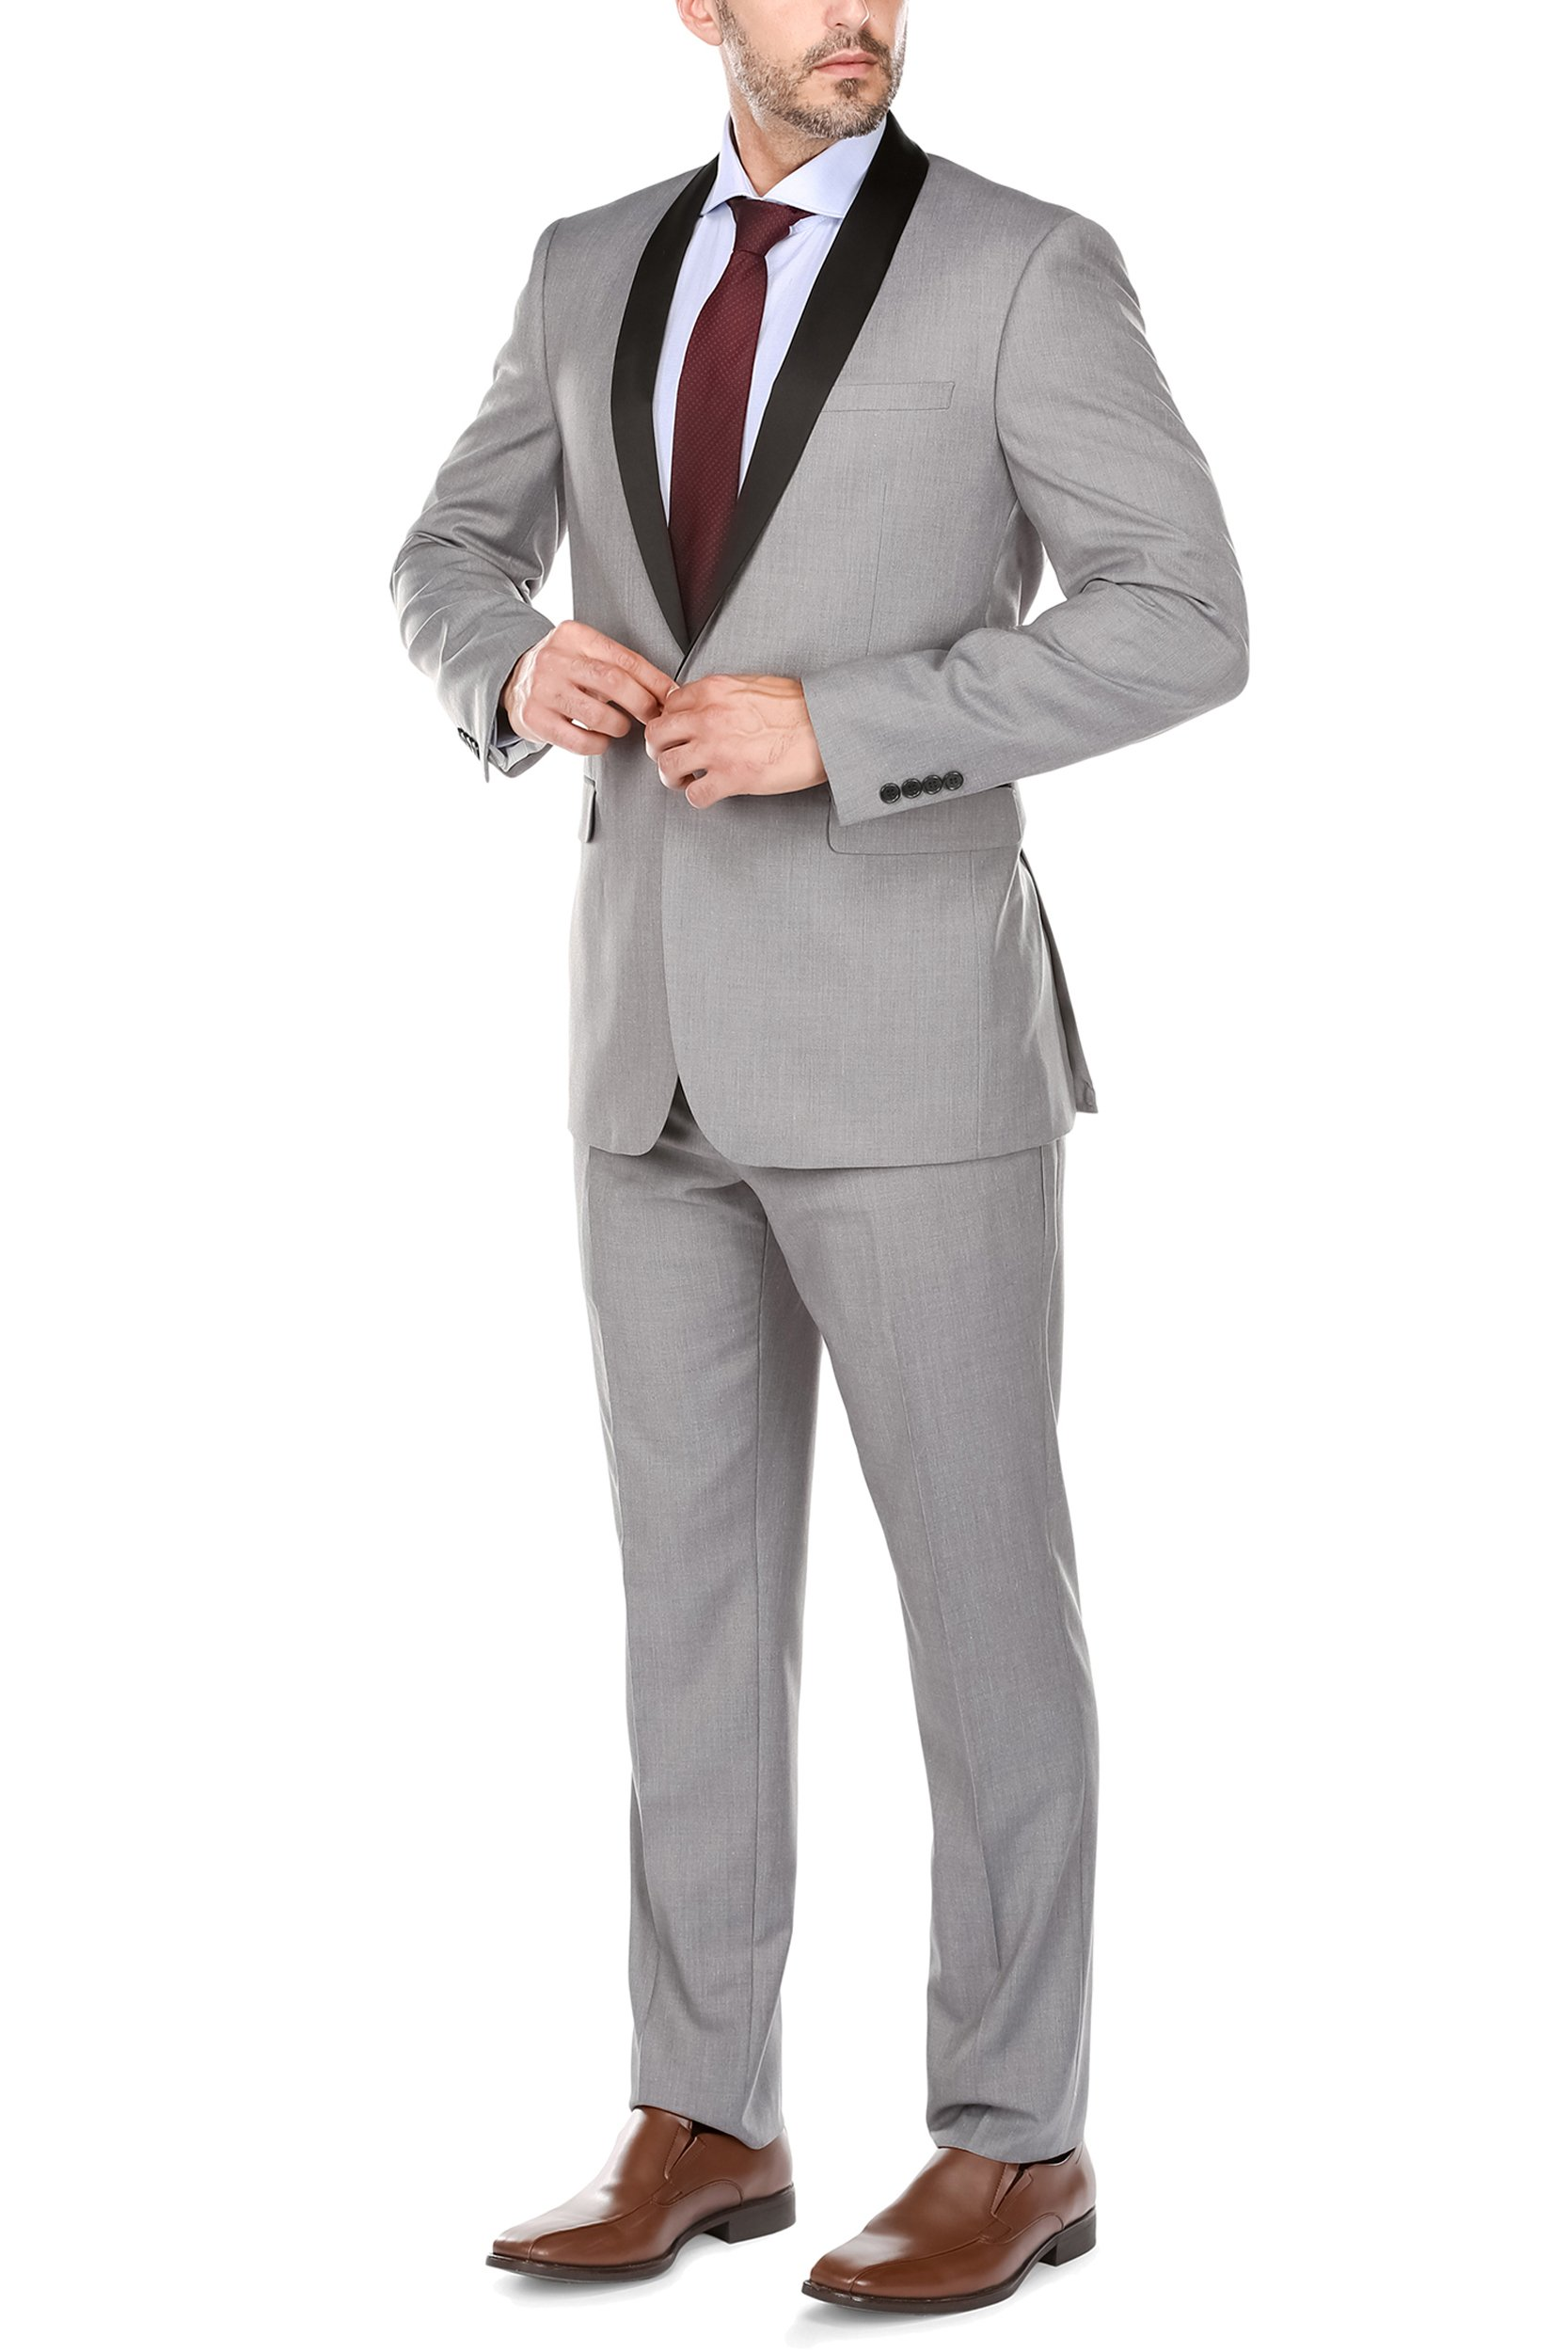 Chama Men's Single Breasted Shawl Collar Tuxedo Slim Fit Suit (40 Long/34 Waist, Light Grey)